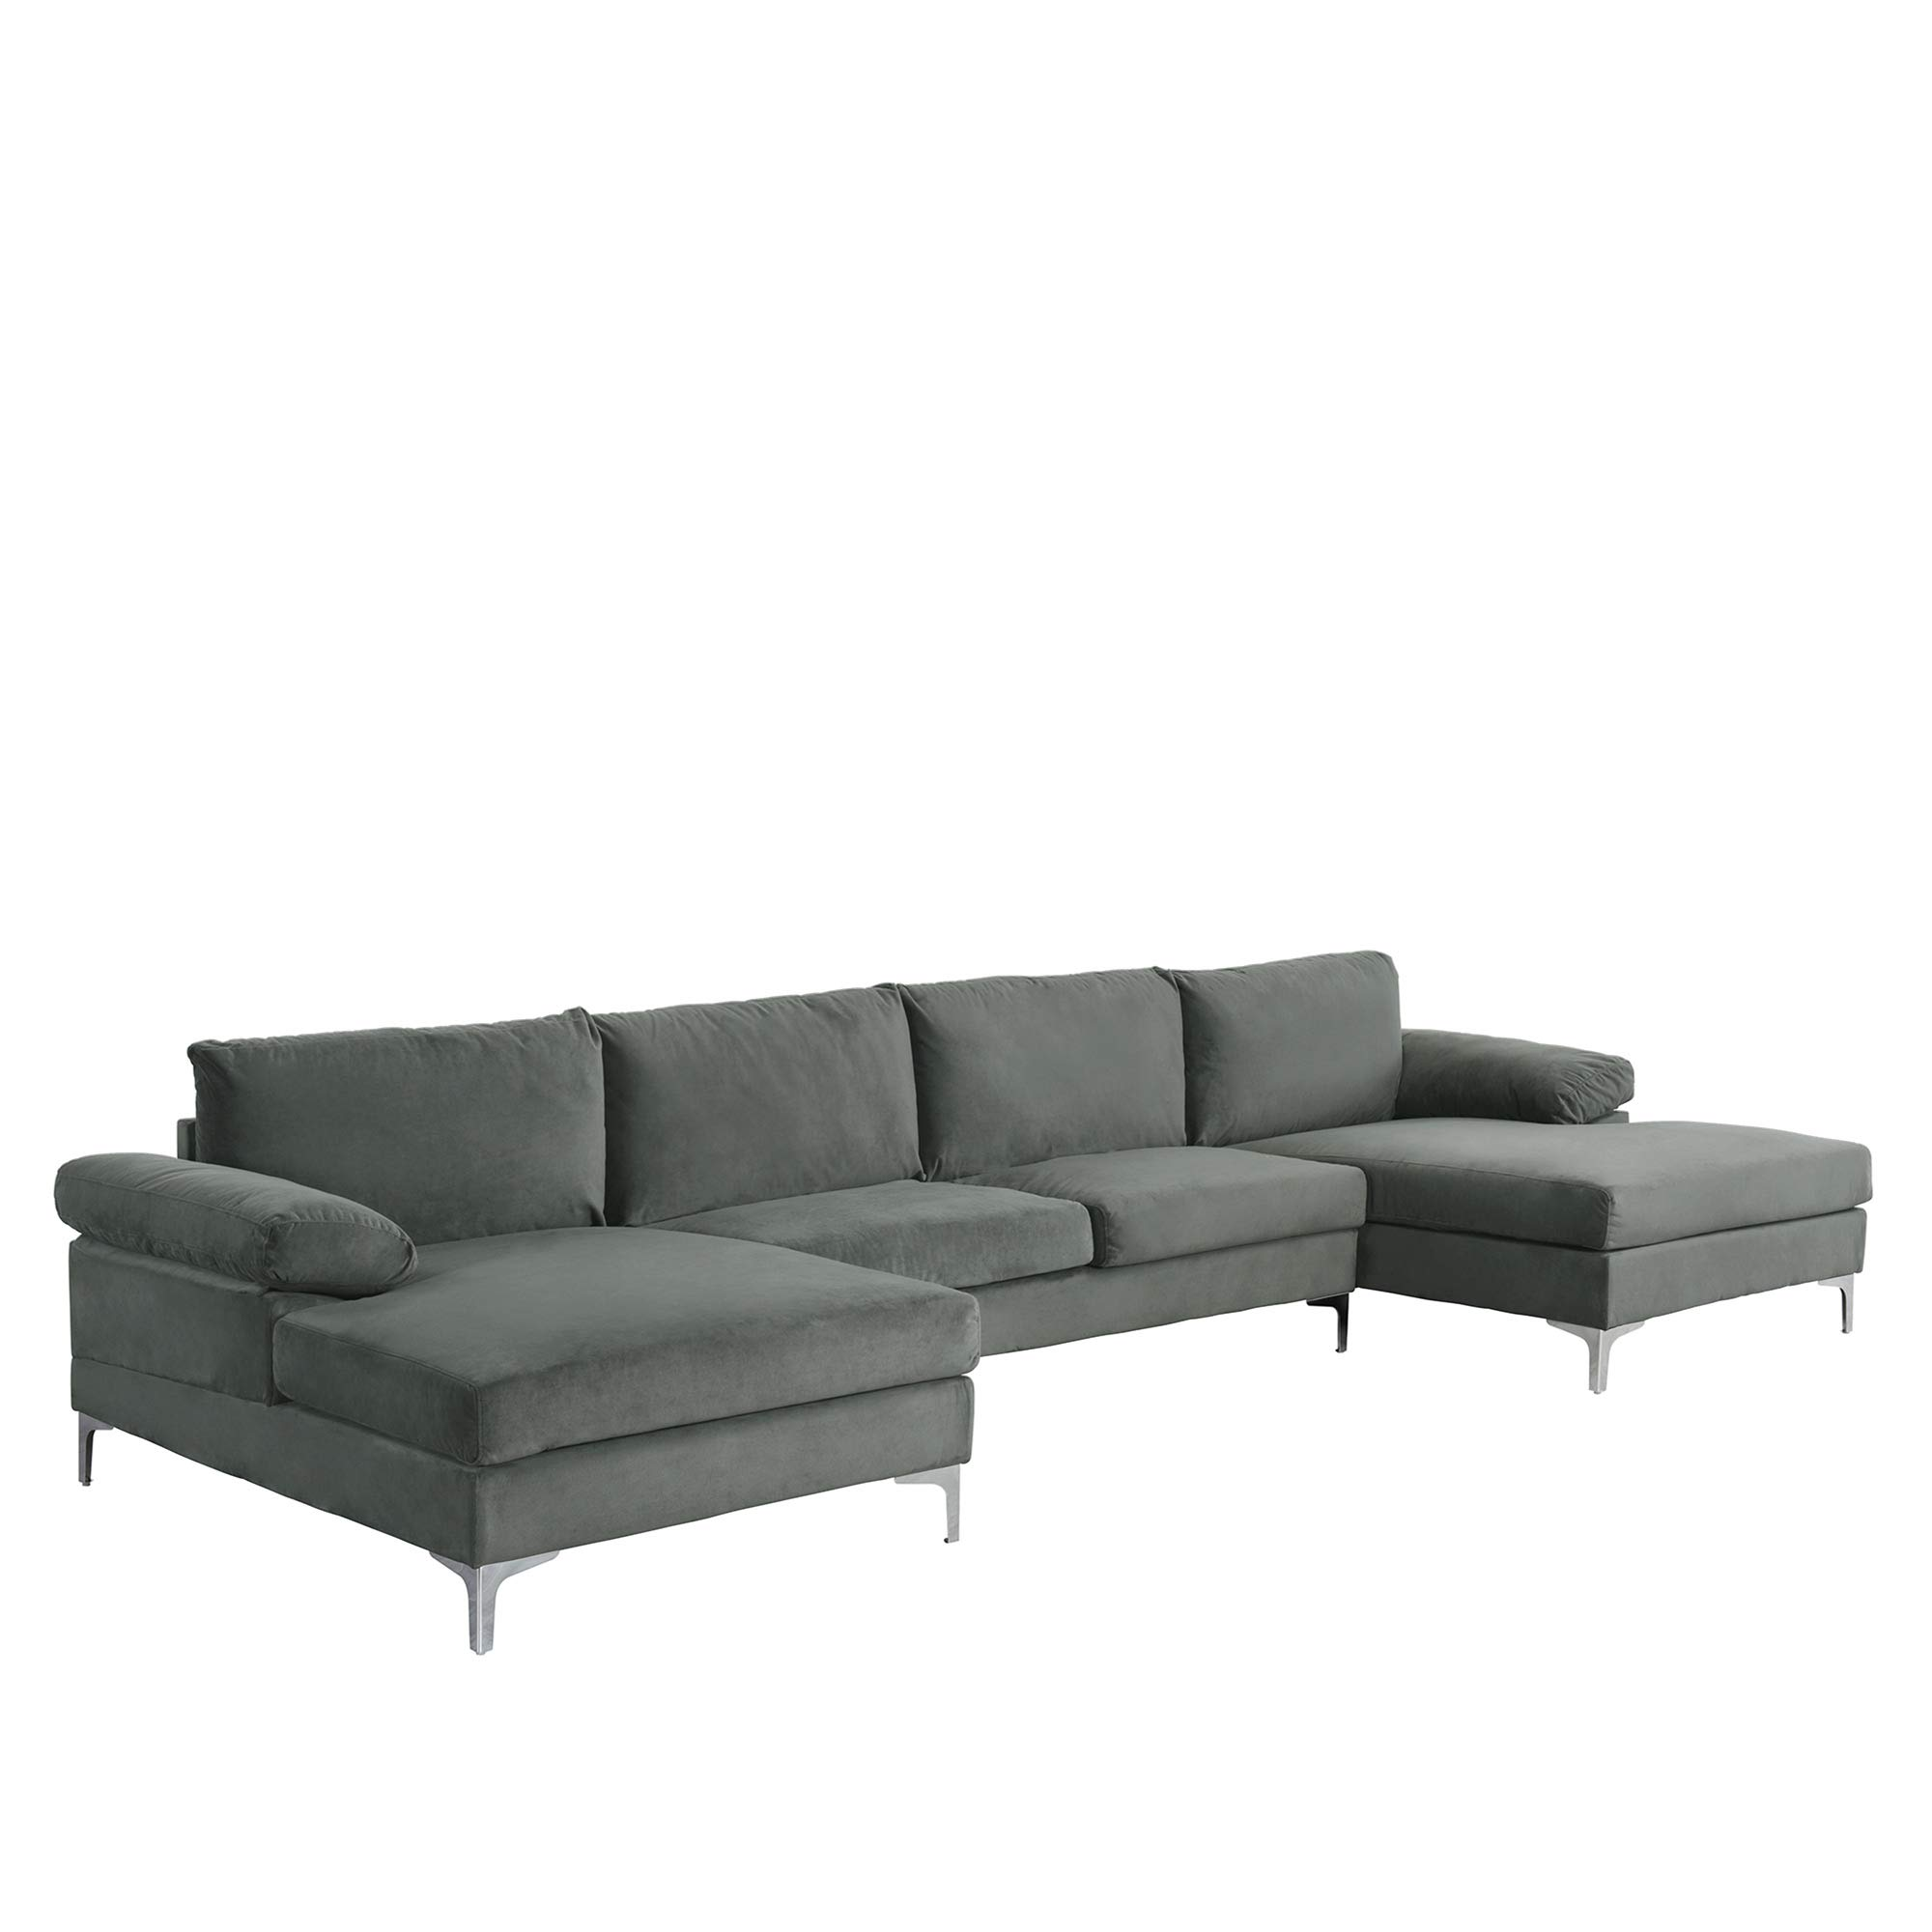 Sponsored Ad - Casa AndreaMilano Modern Large Velvet Fabric U-Shape Sectional Sofa, Double Extra Wide Chaise Lounge Couch,...